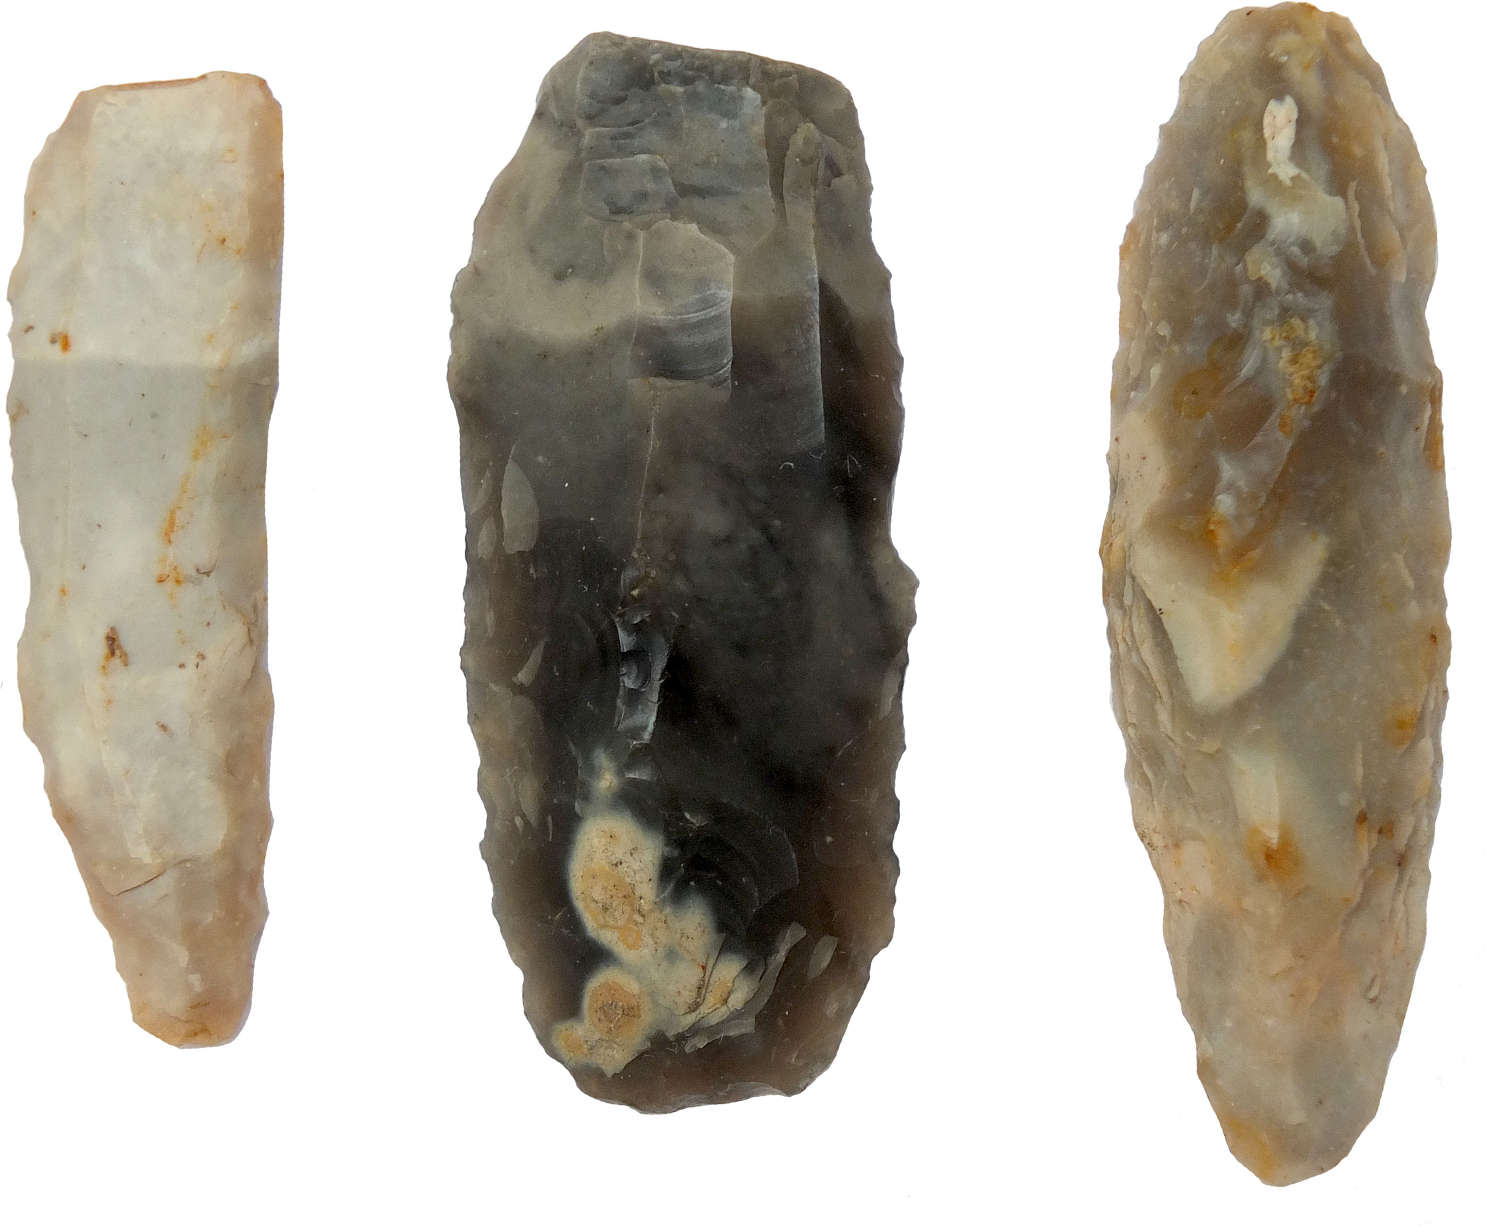 A group of three Neolithic to Middle Bronze Age flint knives